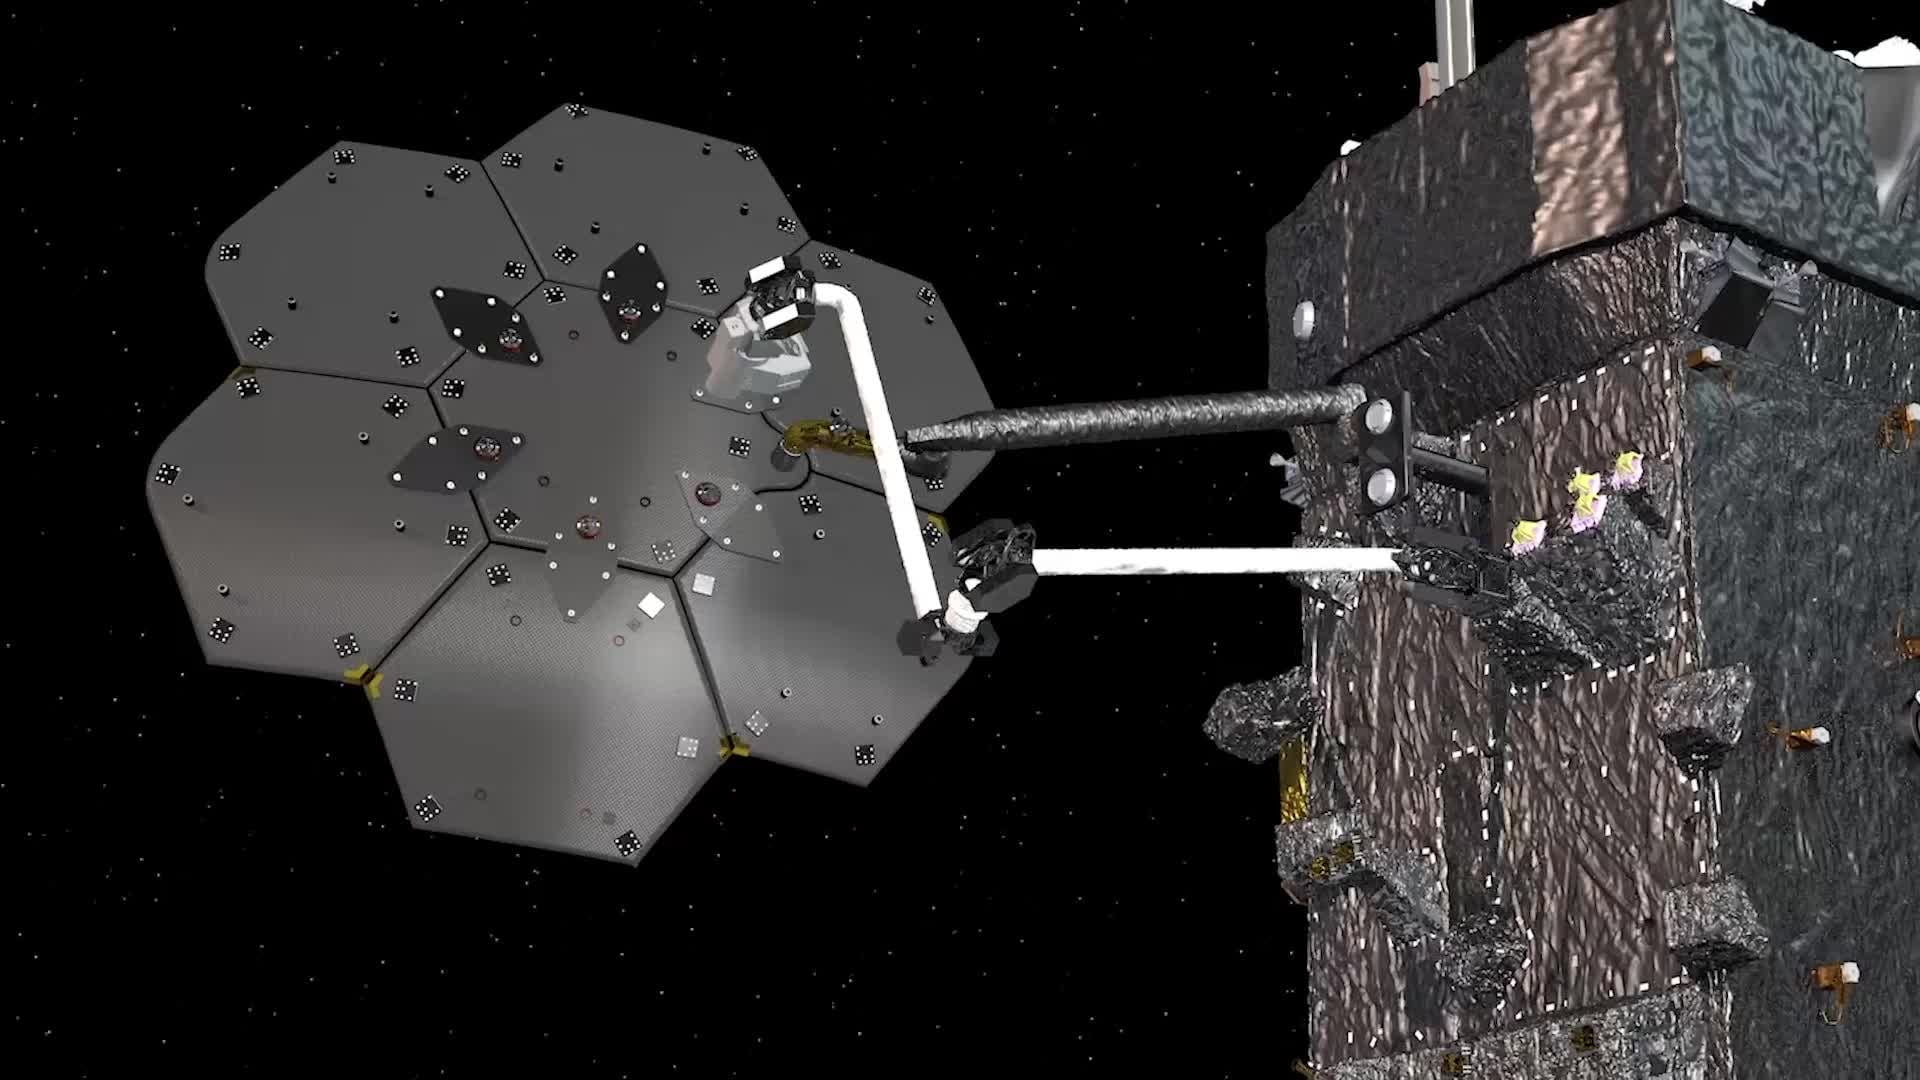 NASA wants to manufacture spacecraft parts in low-Earth orbit